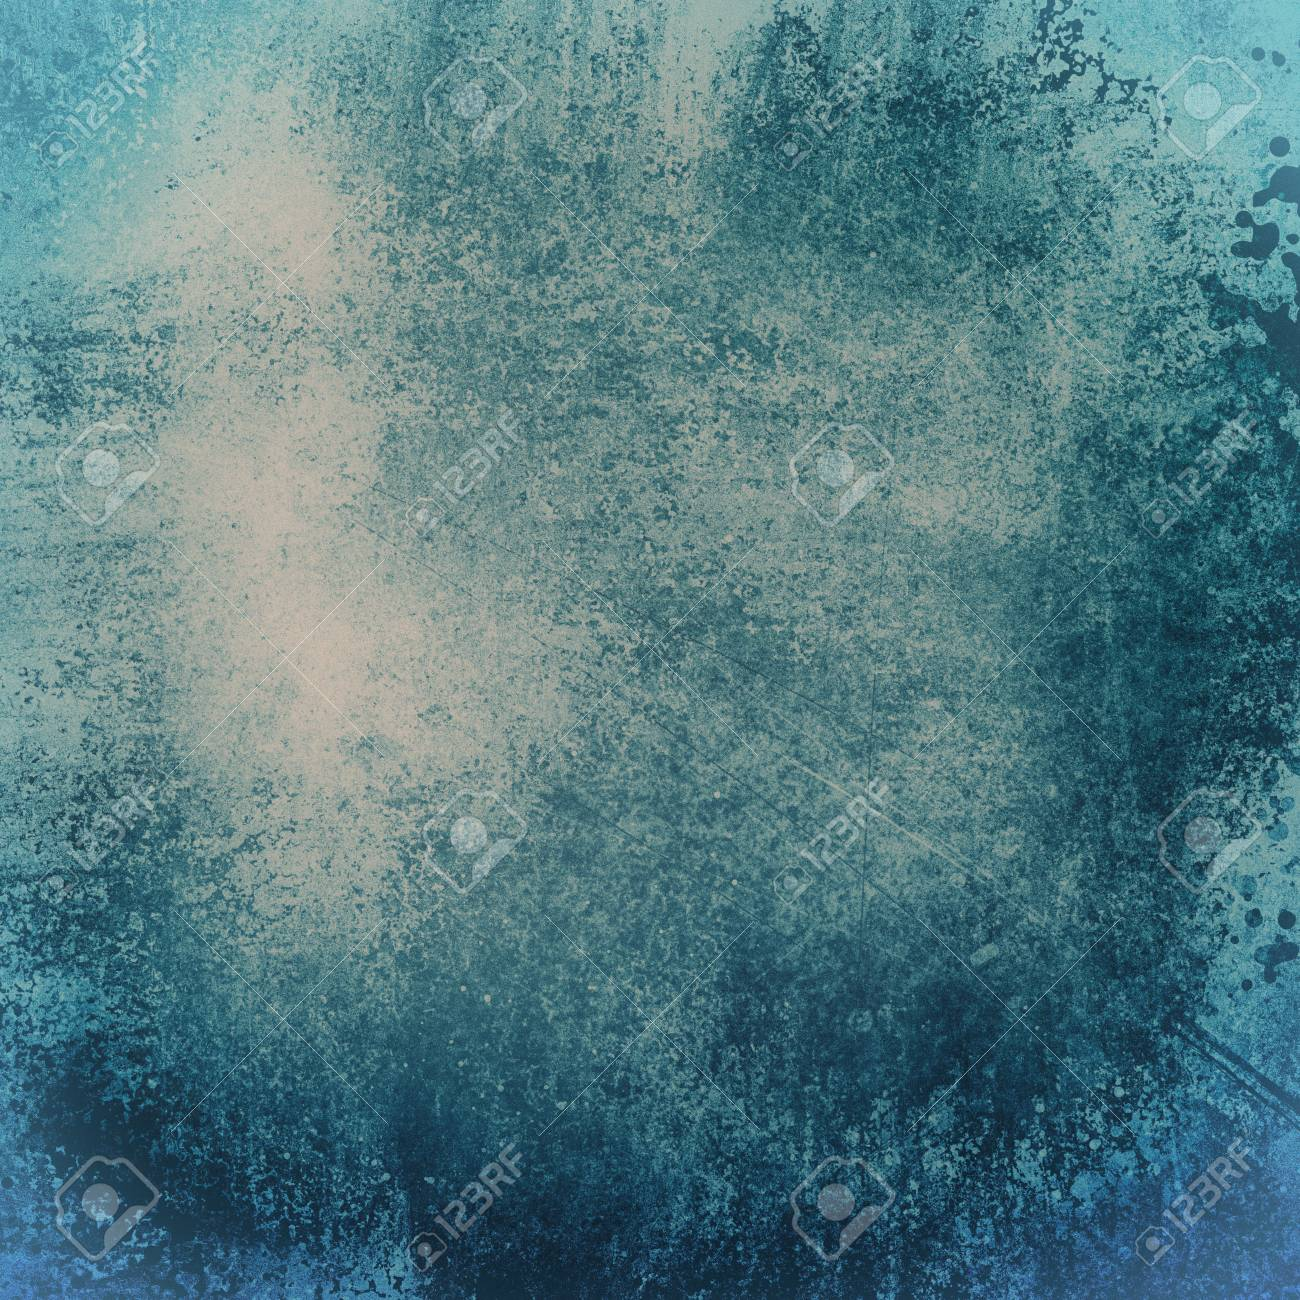 Old Dark Blue Paper Background With Grunge And Messy Stains Paint Blotches Distressed Faded